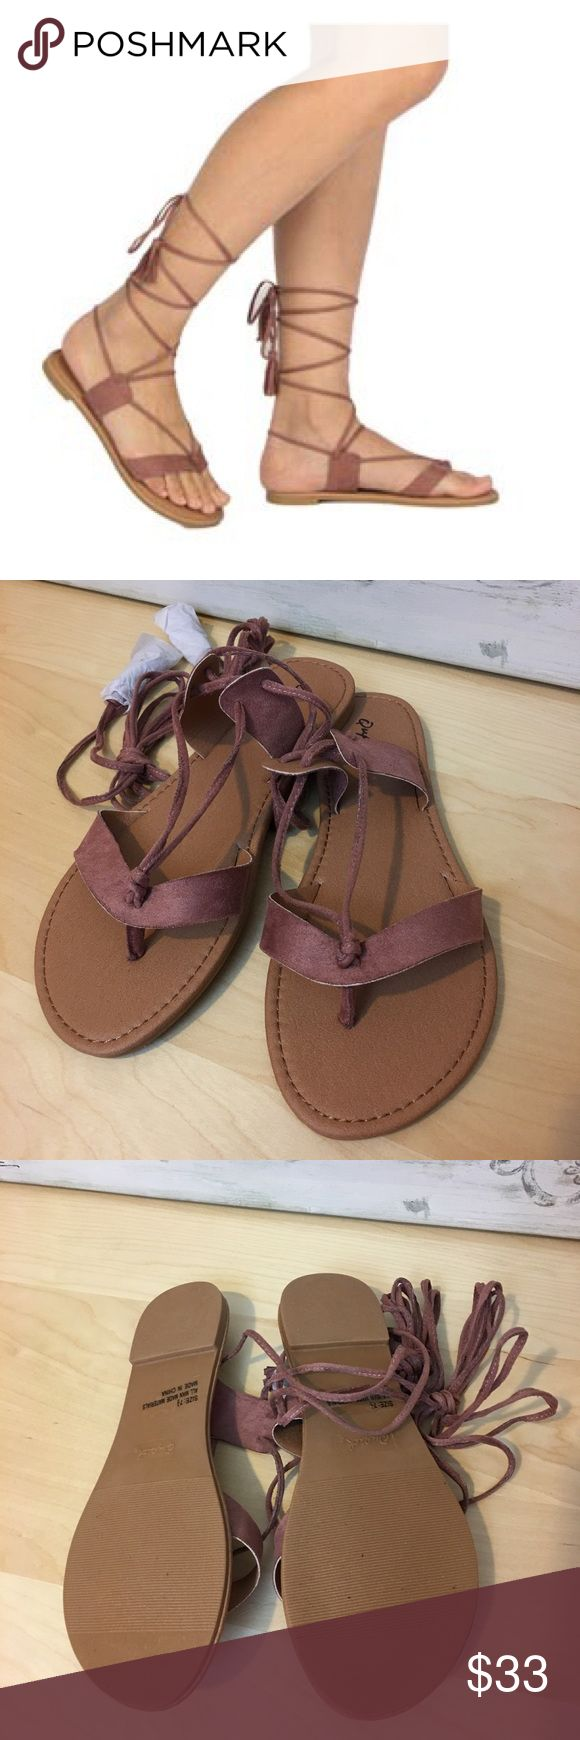 Mauve Lace up Sandals Mauve Lace up flat sandals. So cute comfy for spring/ summer. Pair them with jeans, shorts, skirts or even your swim suit! Price Firm unless bundled Fabfindz Shoes Sandals